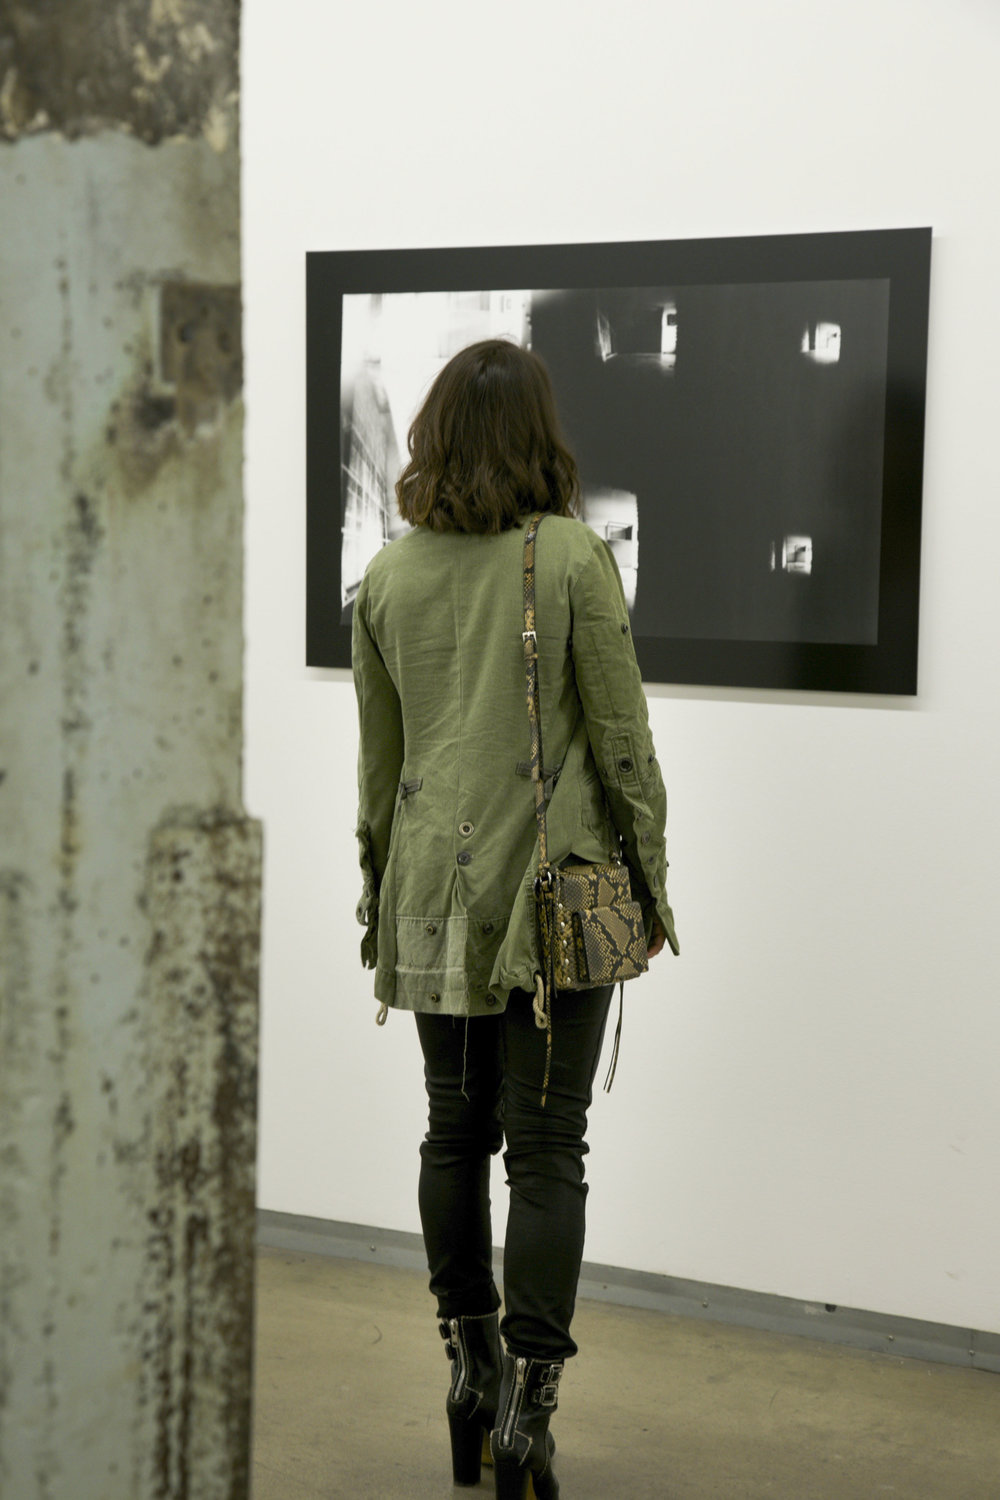 Greg Lauren Jacket, Studio A/W Bag, Club Monaco T-shirt, Robin's Jean Pants, Chloe Boots.